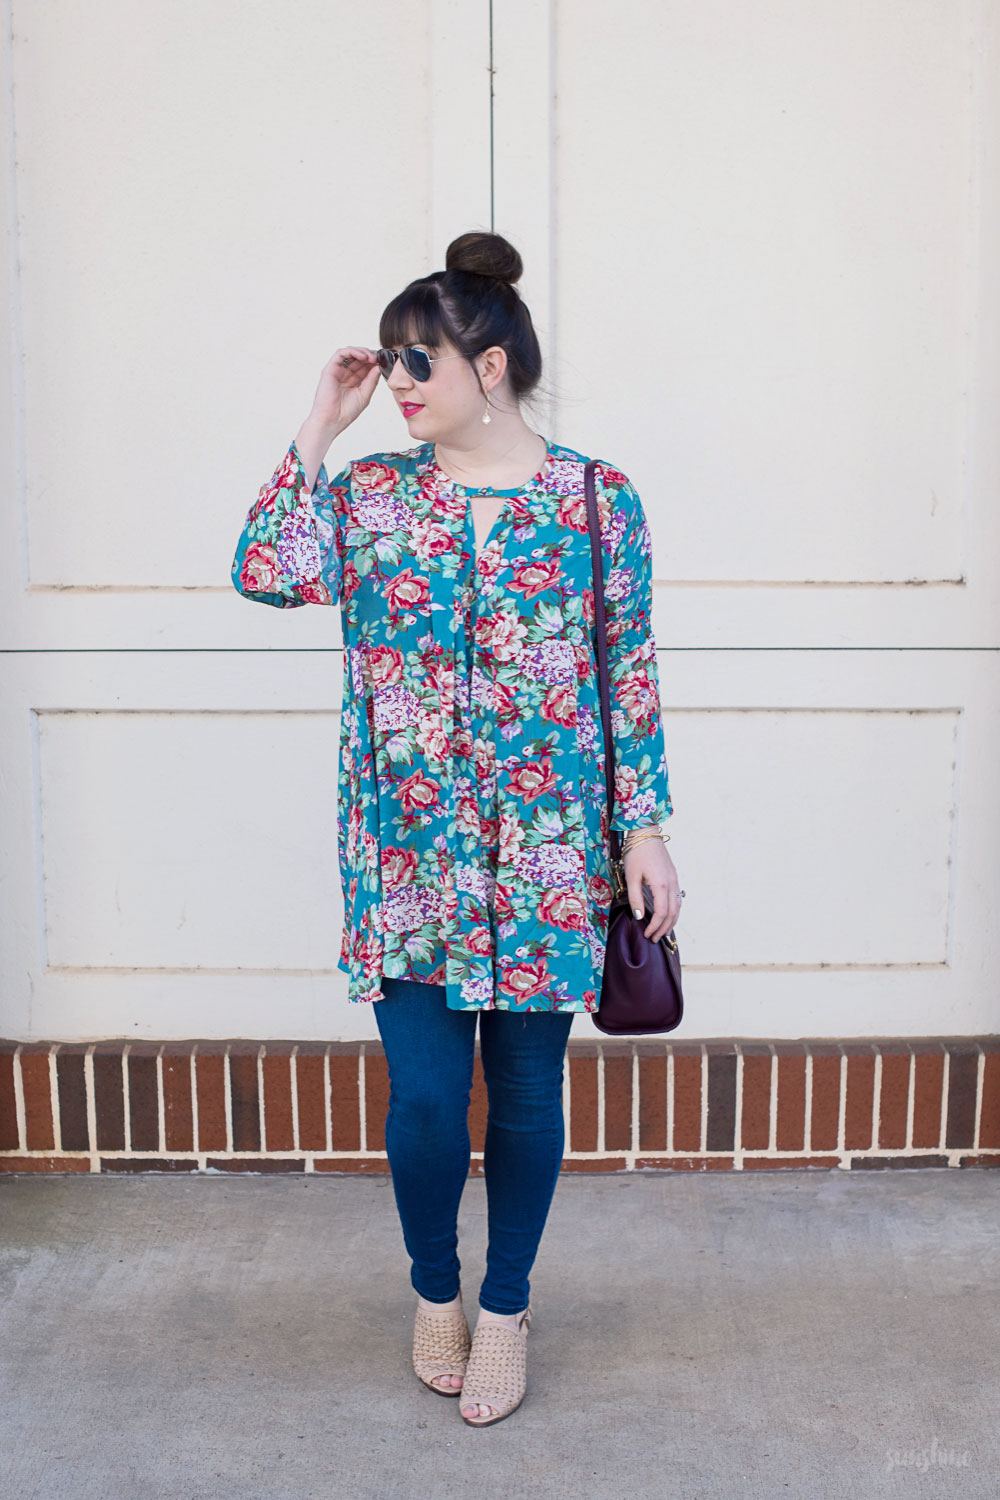 PinkBlush Tunic, Old Navy Jeggings, Steve Madden Mules, and a Vera Bradley Bag